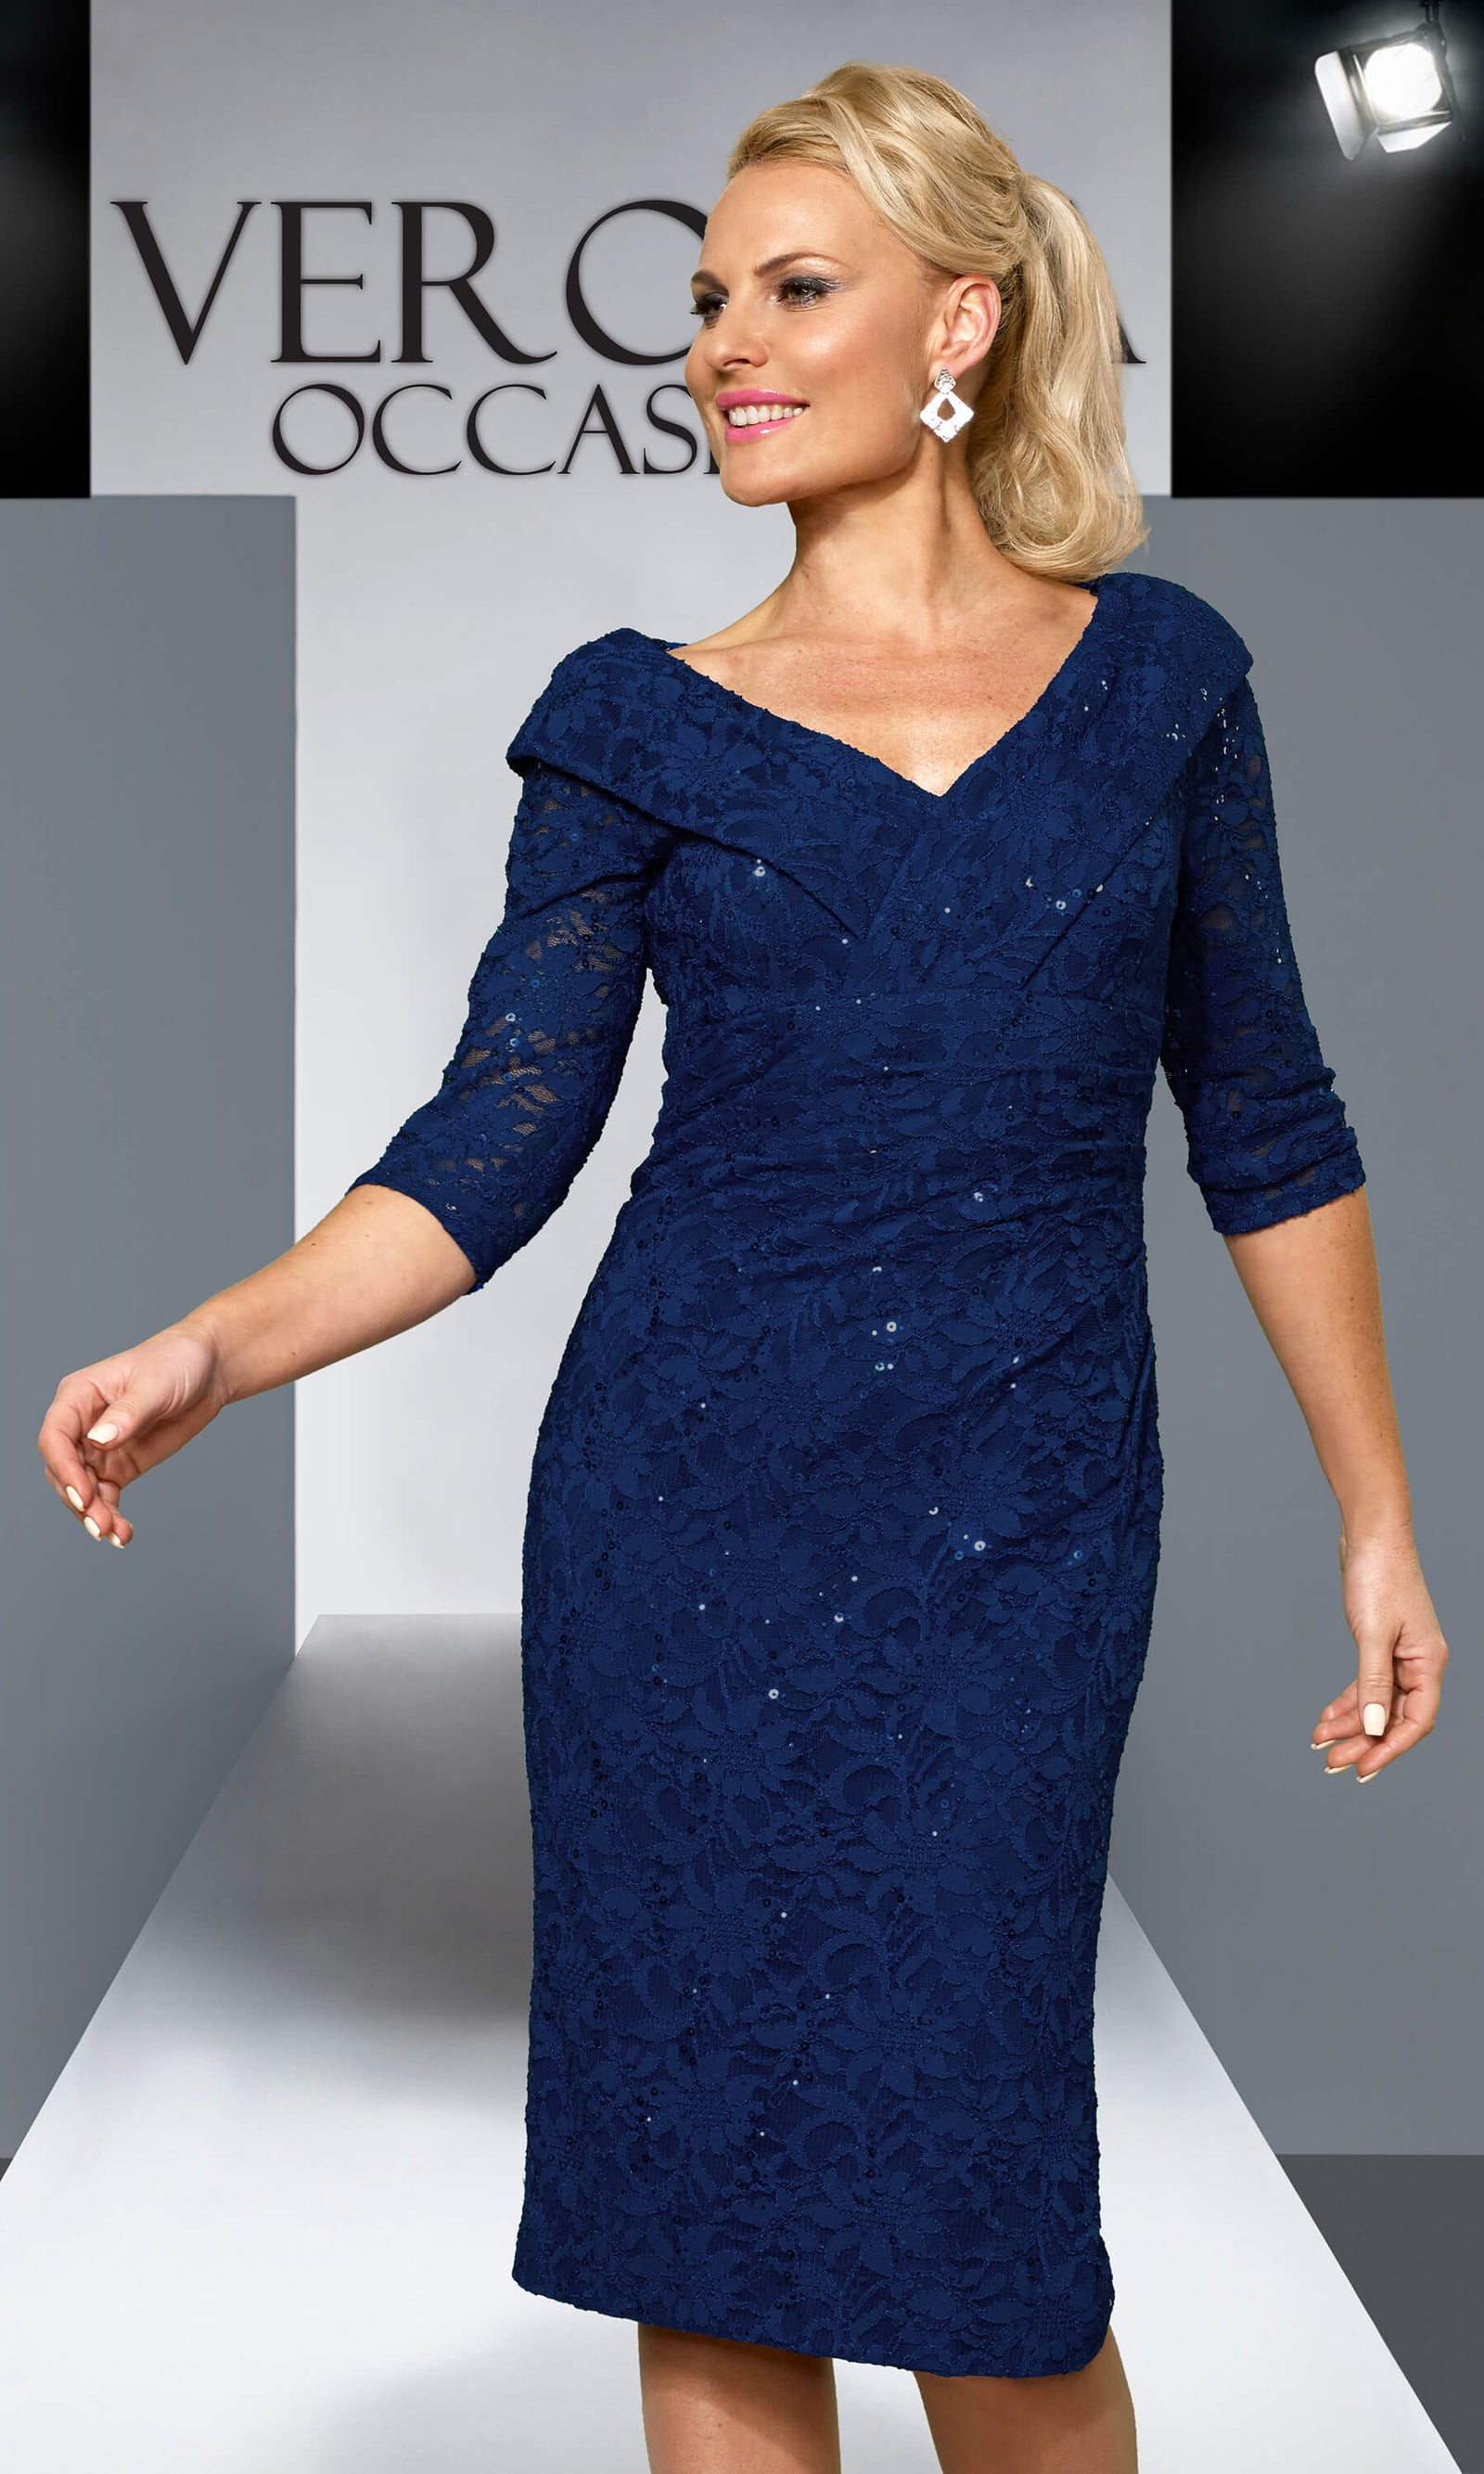 VO4576 Navy Veromia Occasions Lace Cocktail Dress - Fab Frocks